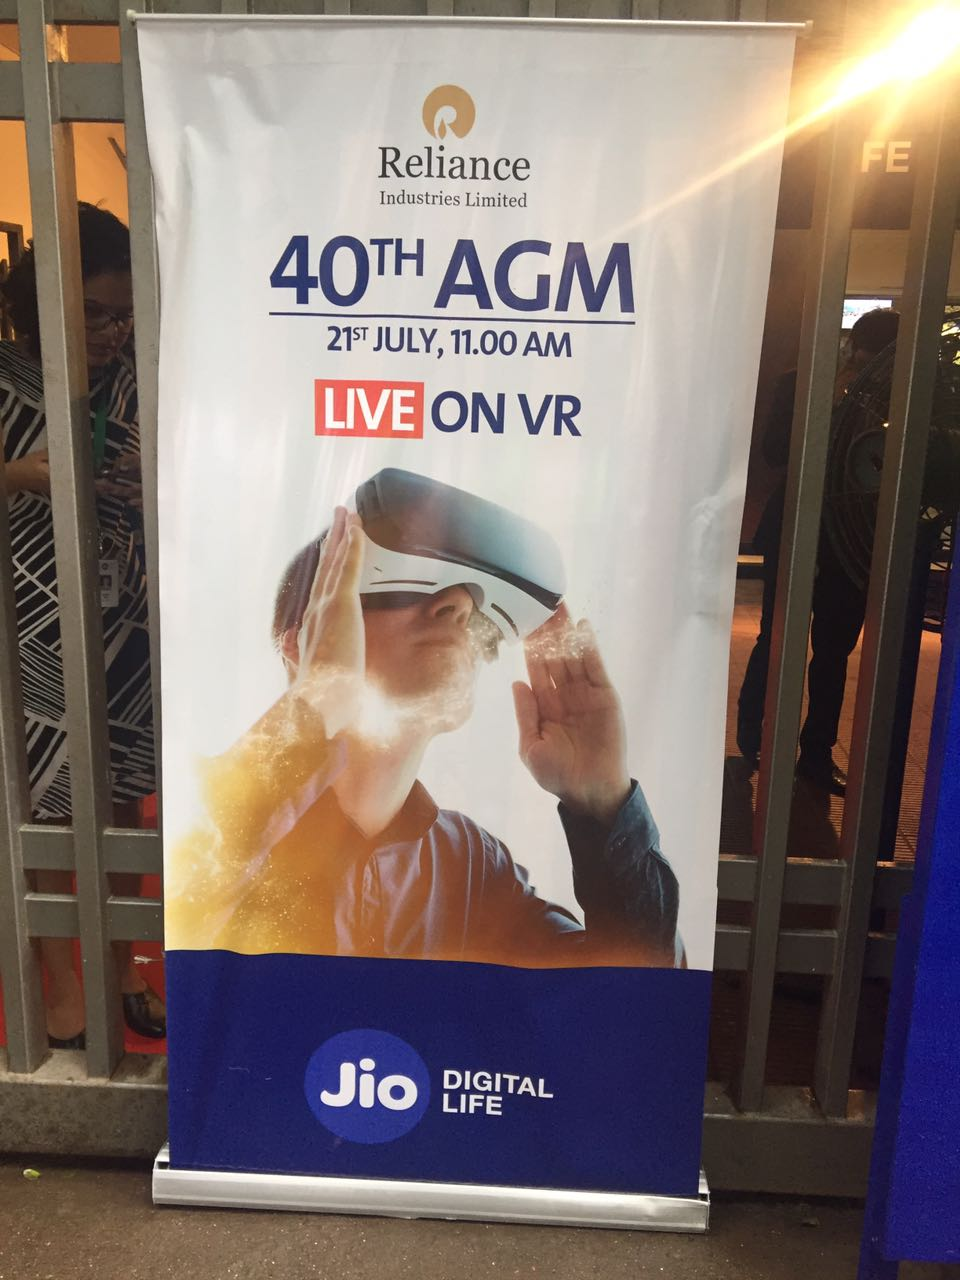 360-degree-Jio-VR